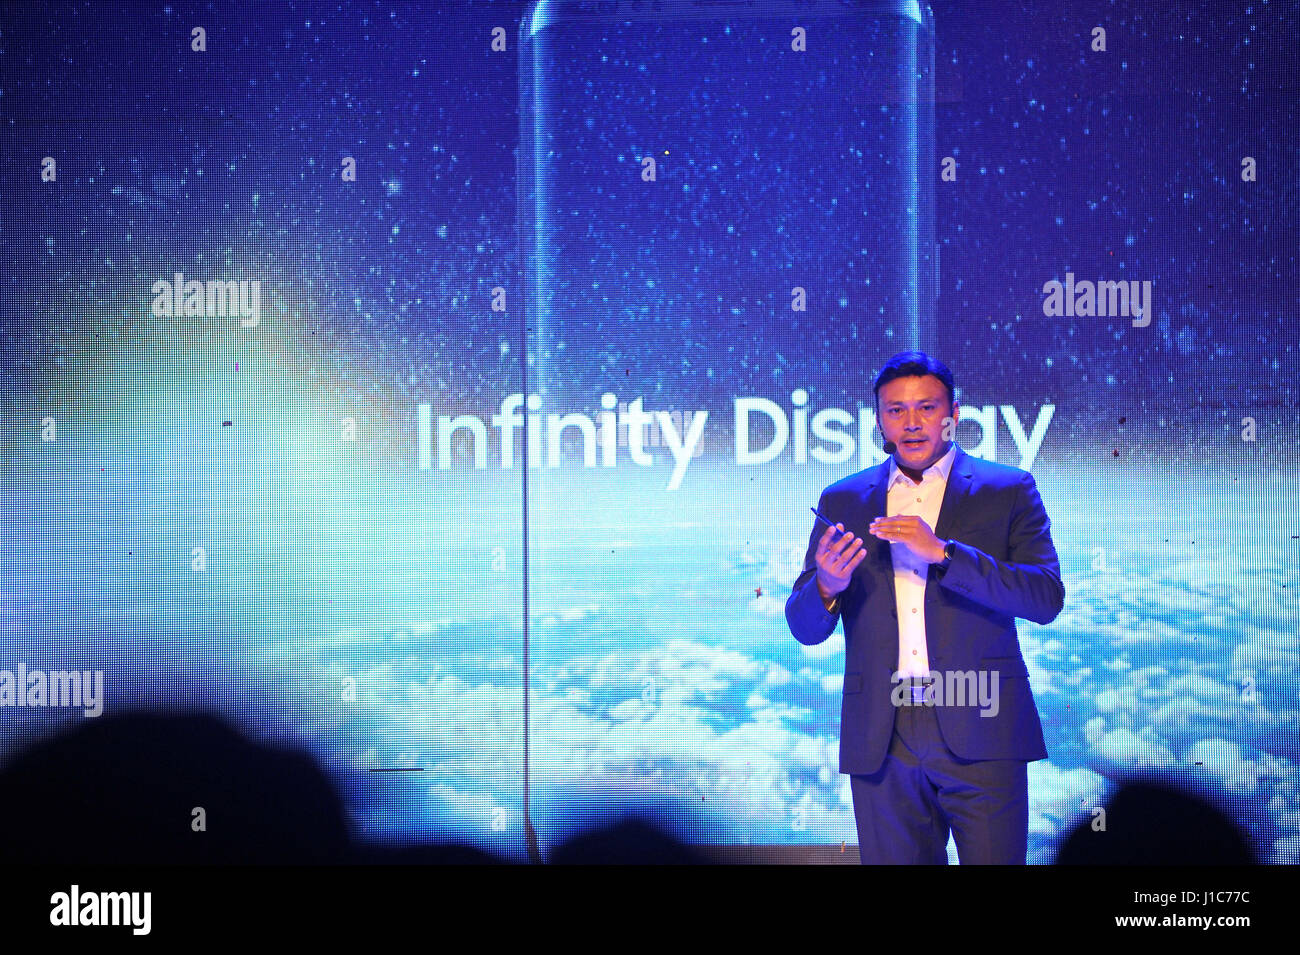 Pranaya Ratna Sthapit, Head - HHP, Samsung Nepal giving speech during officially unrevealing of Samsung S8 and S8 - Stock Image